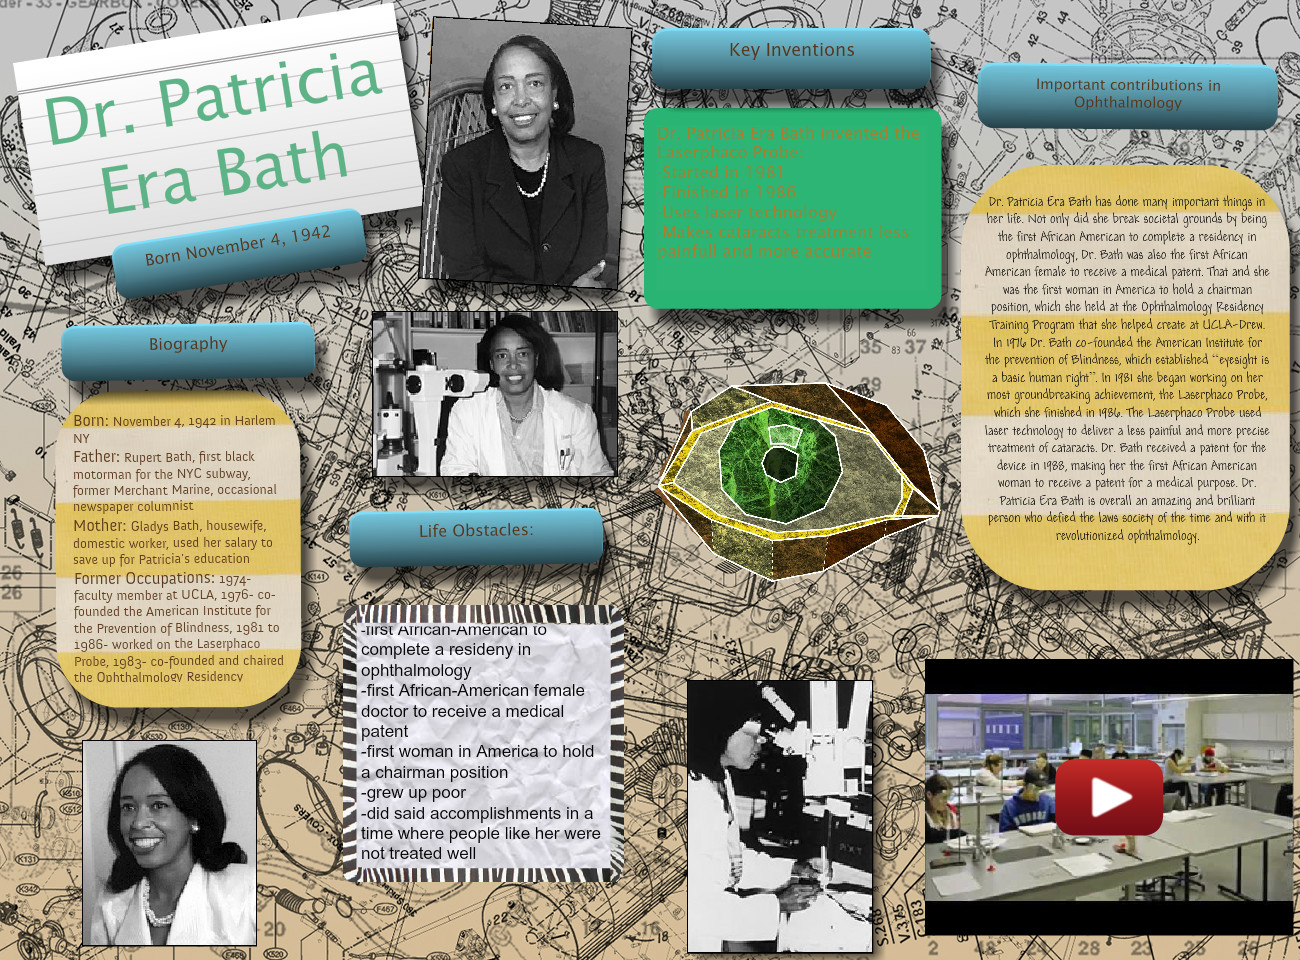 Dr  Patricia Bath: bath, biographies, en, Én, én, era